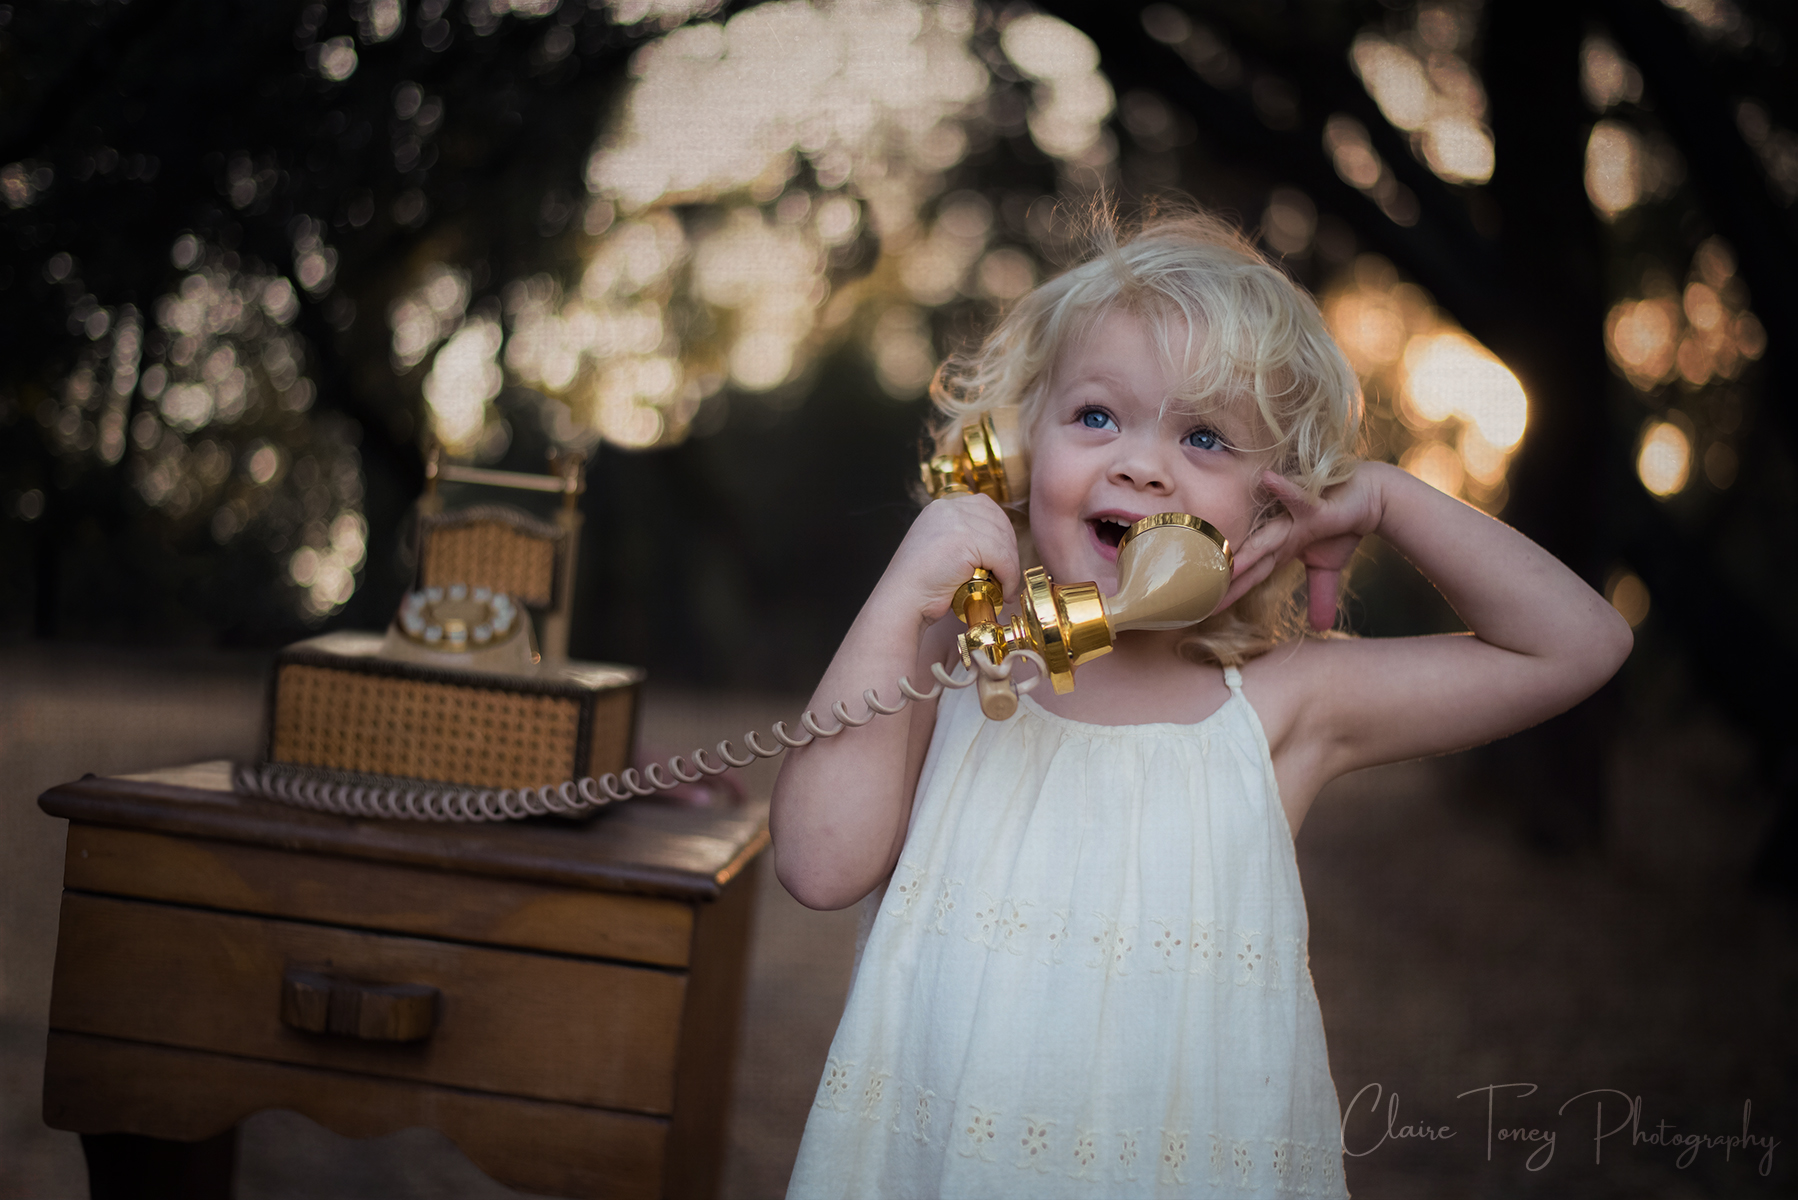 Final version of Girl on Vintage Phone at Orangevale Park photograph by Claire Toney